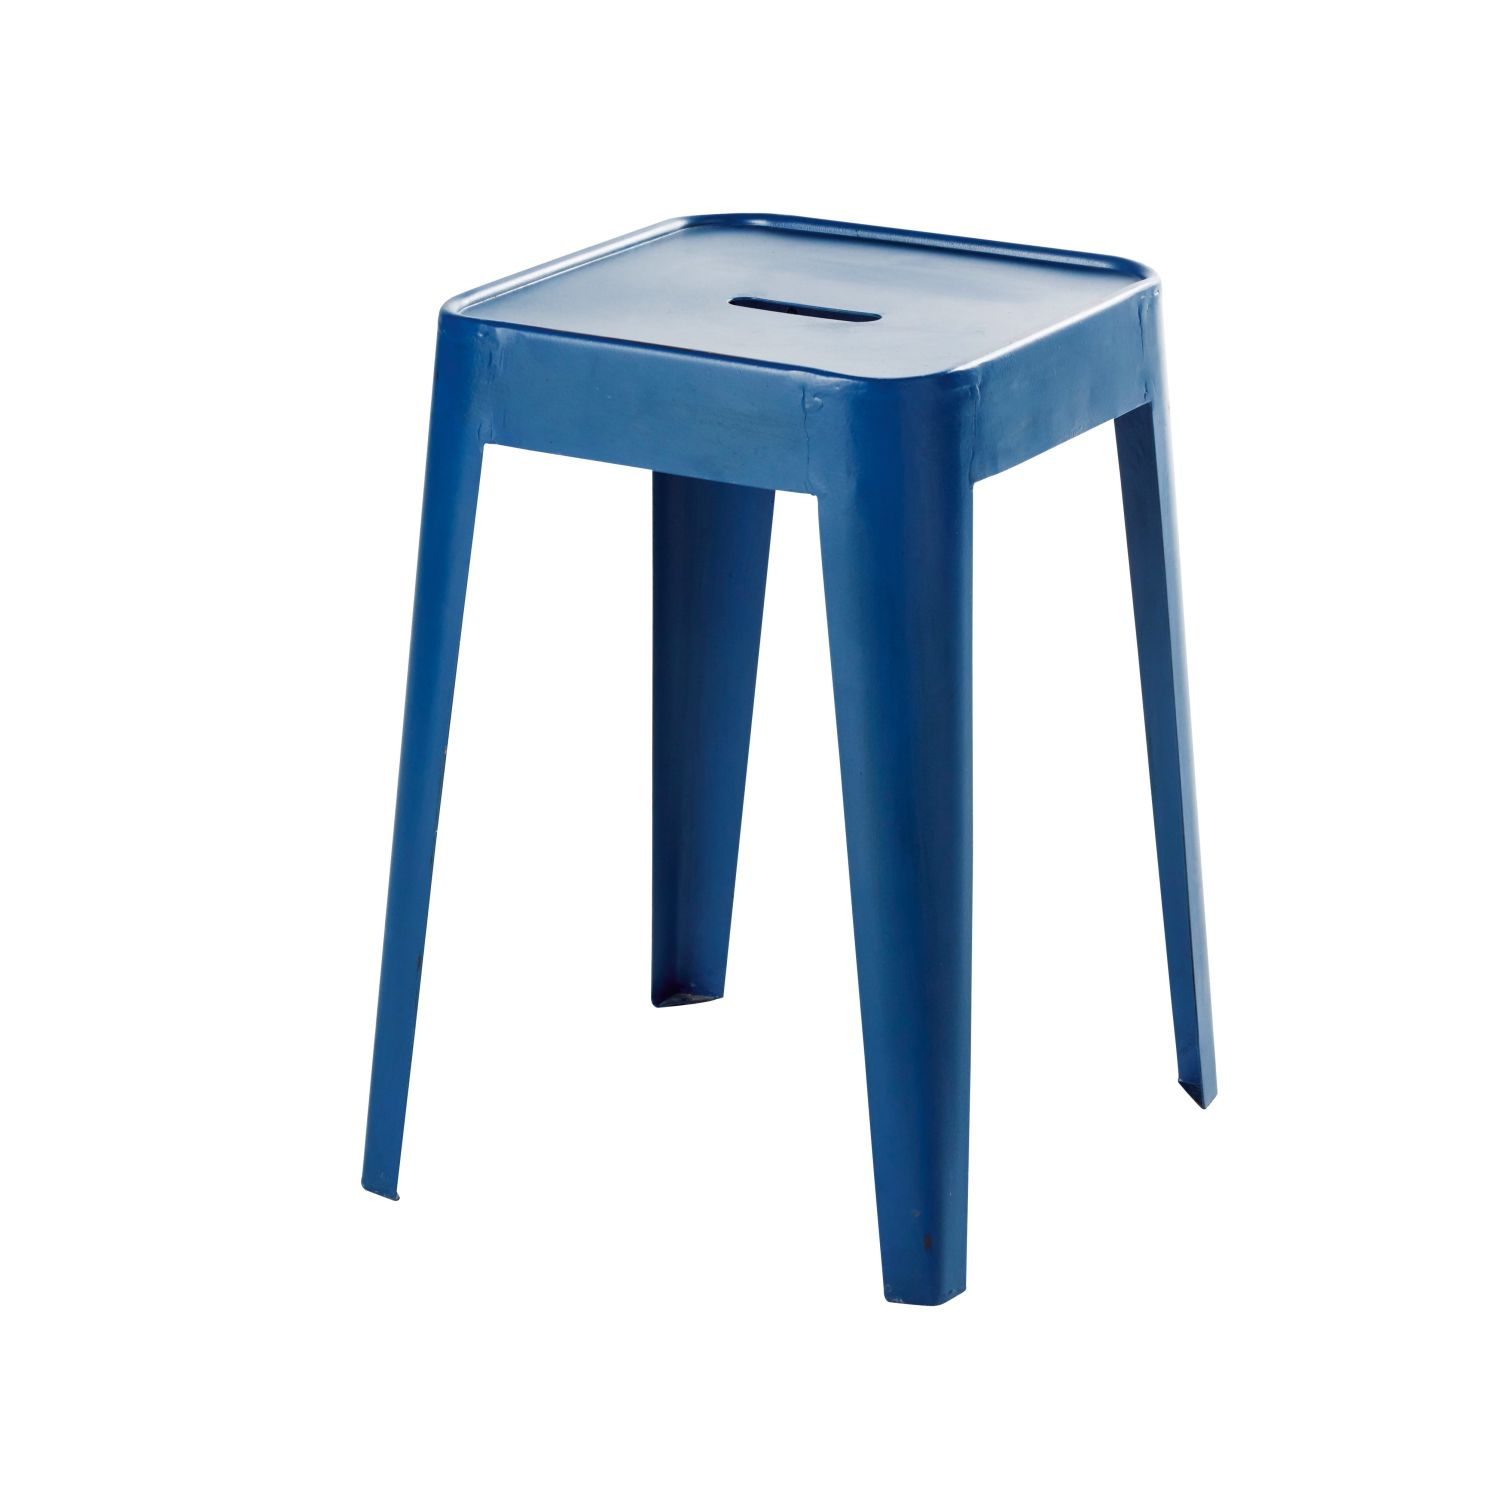 tabouret indus en m tal bleu indigo maisons du monde. Black Bedroom Furniture Sets. Home Design Ideas